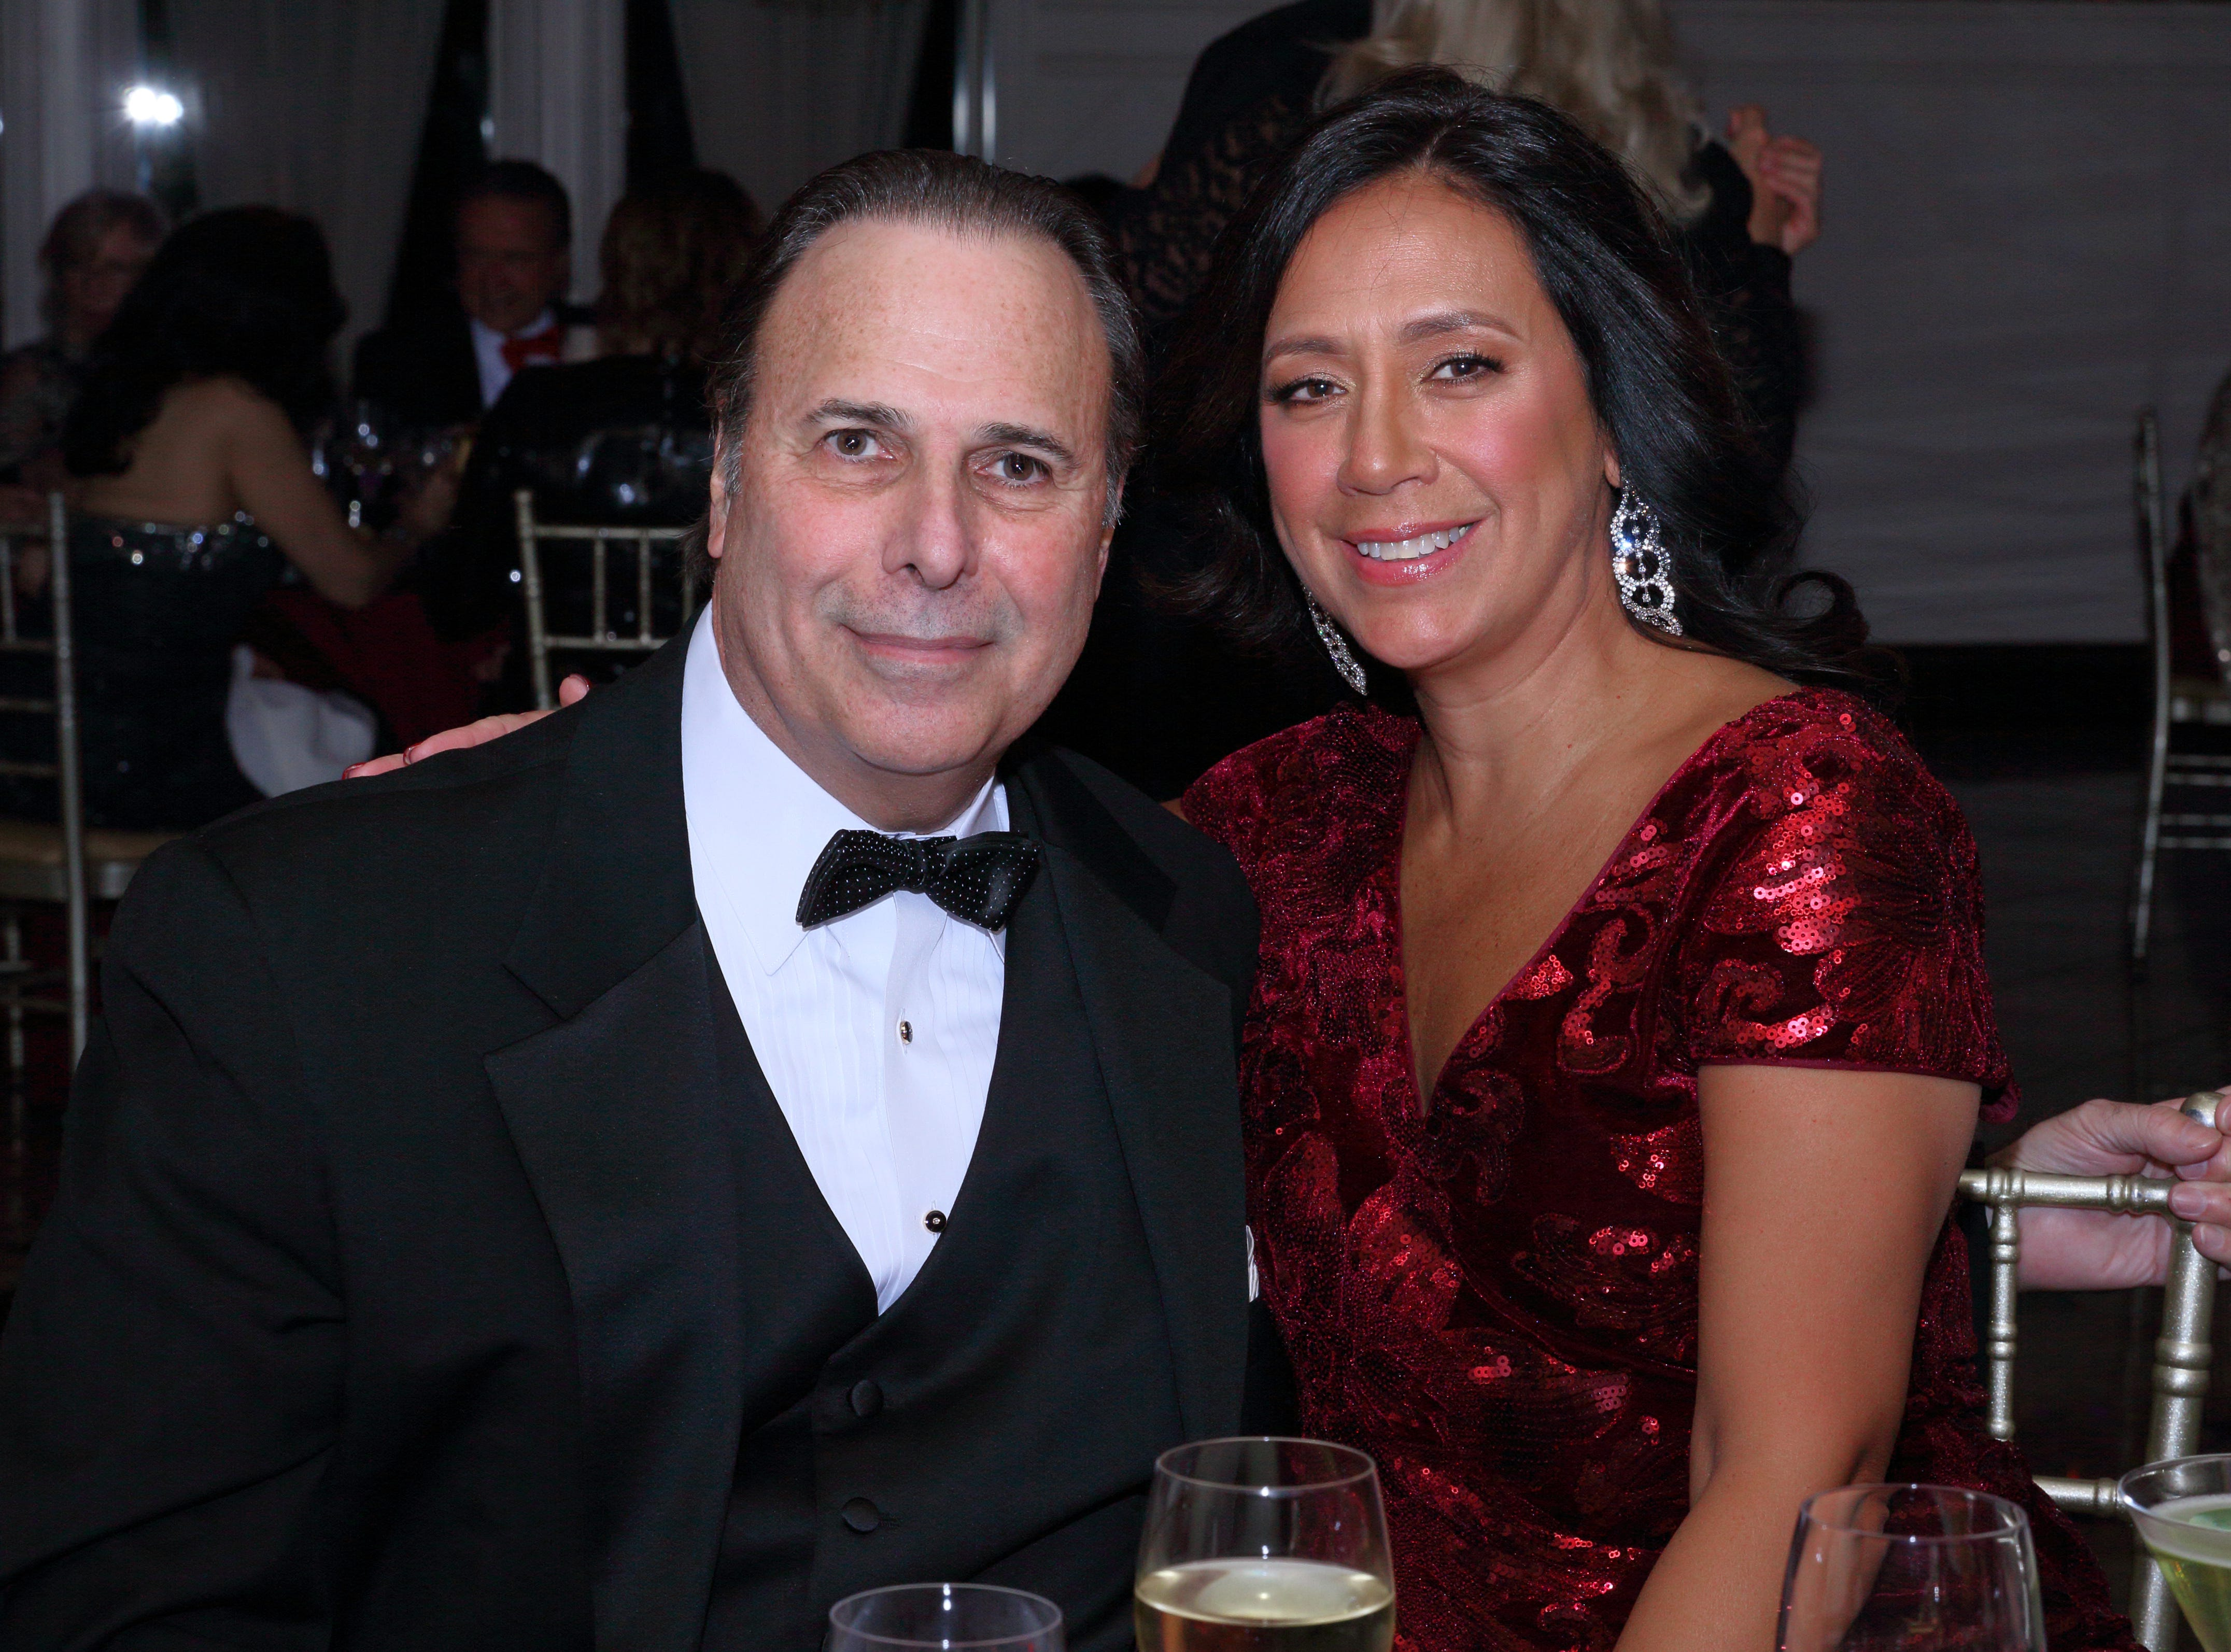 Dr. Ron Sollitto and Gina Diaz. The Saddle River Valley Club held its annual Holiday Gala celebration at Seasons in Washington Township. 11/30/2018